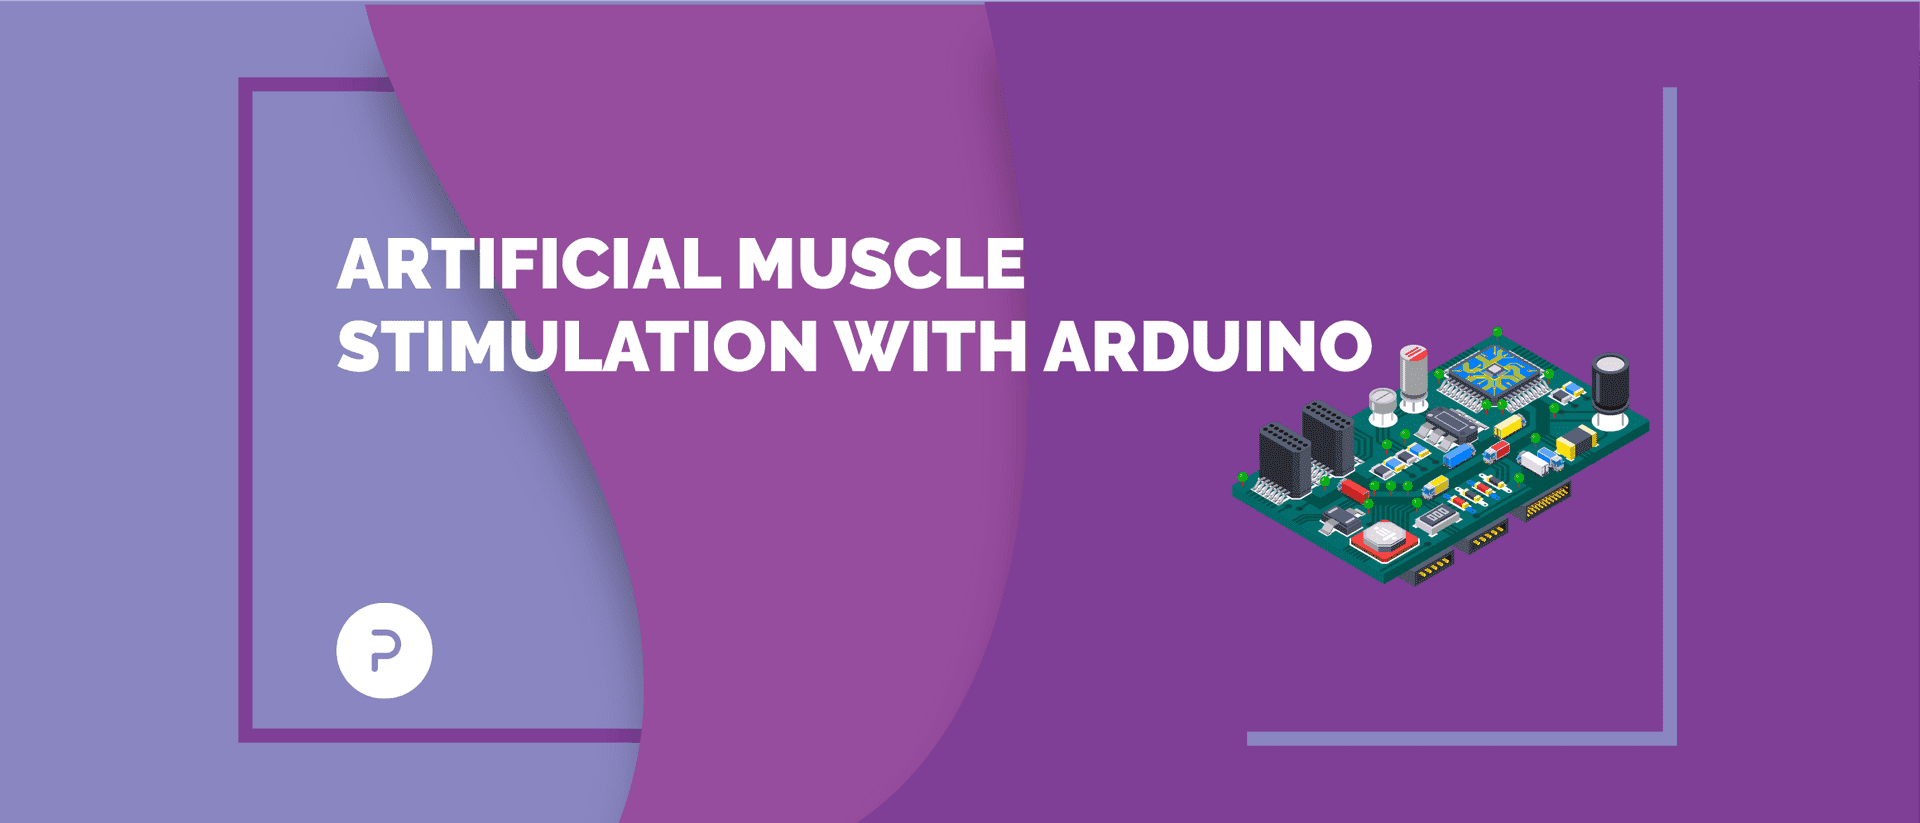 Get to Know Arduino: A Marvel in Artificial Muscle Stimulation